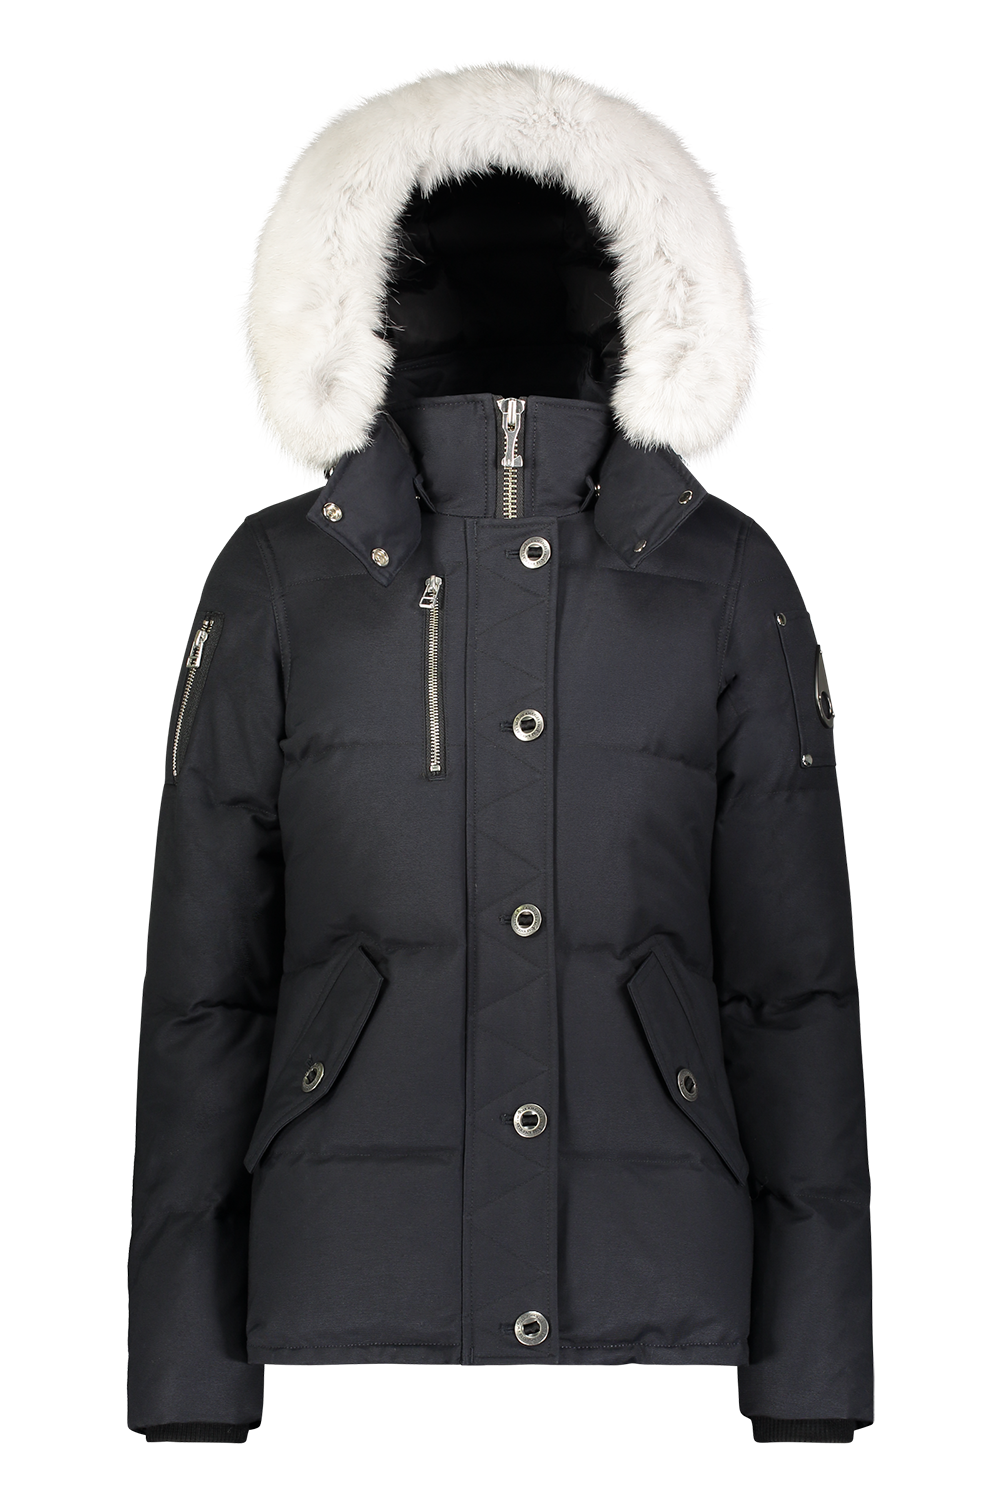 3Q Jacket - Navy/Natural Fox Fur